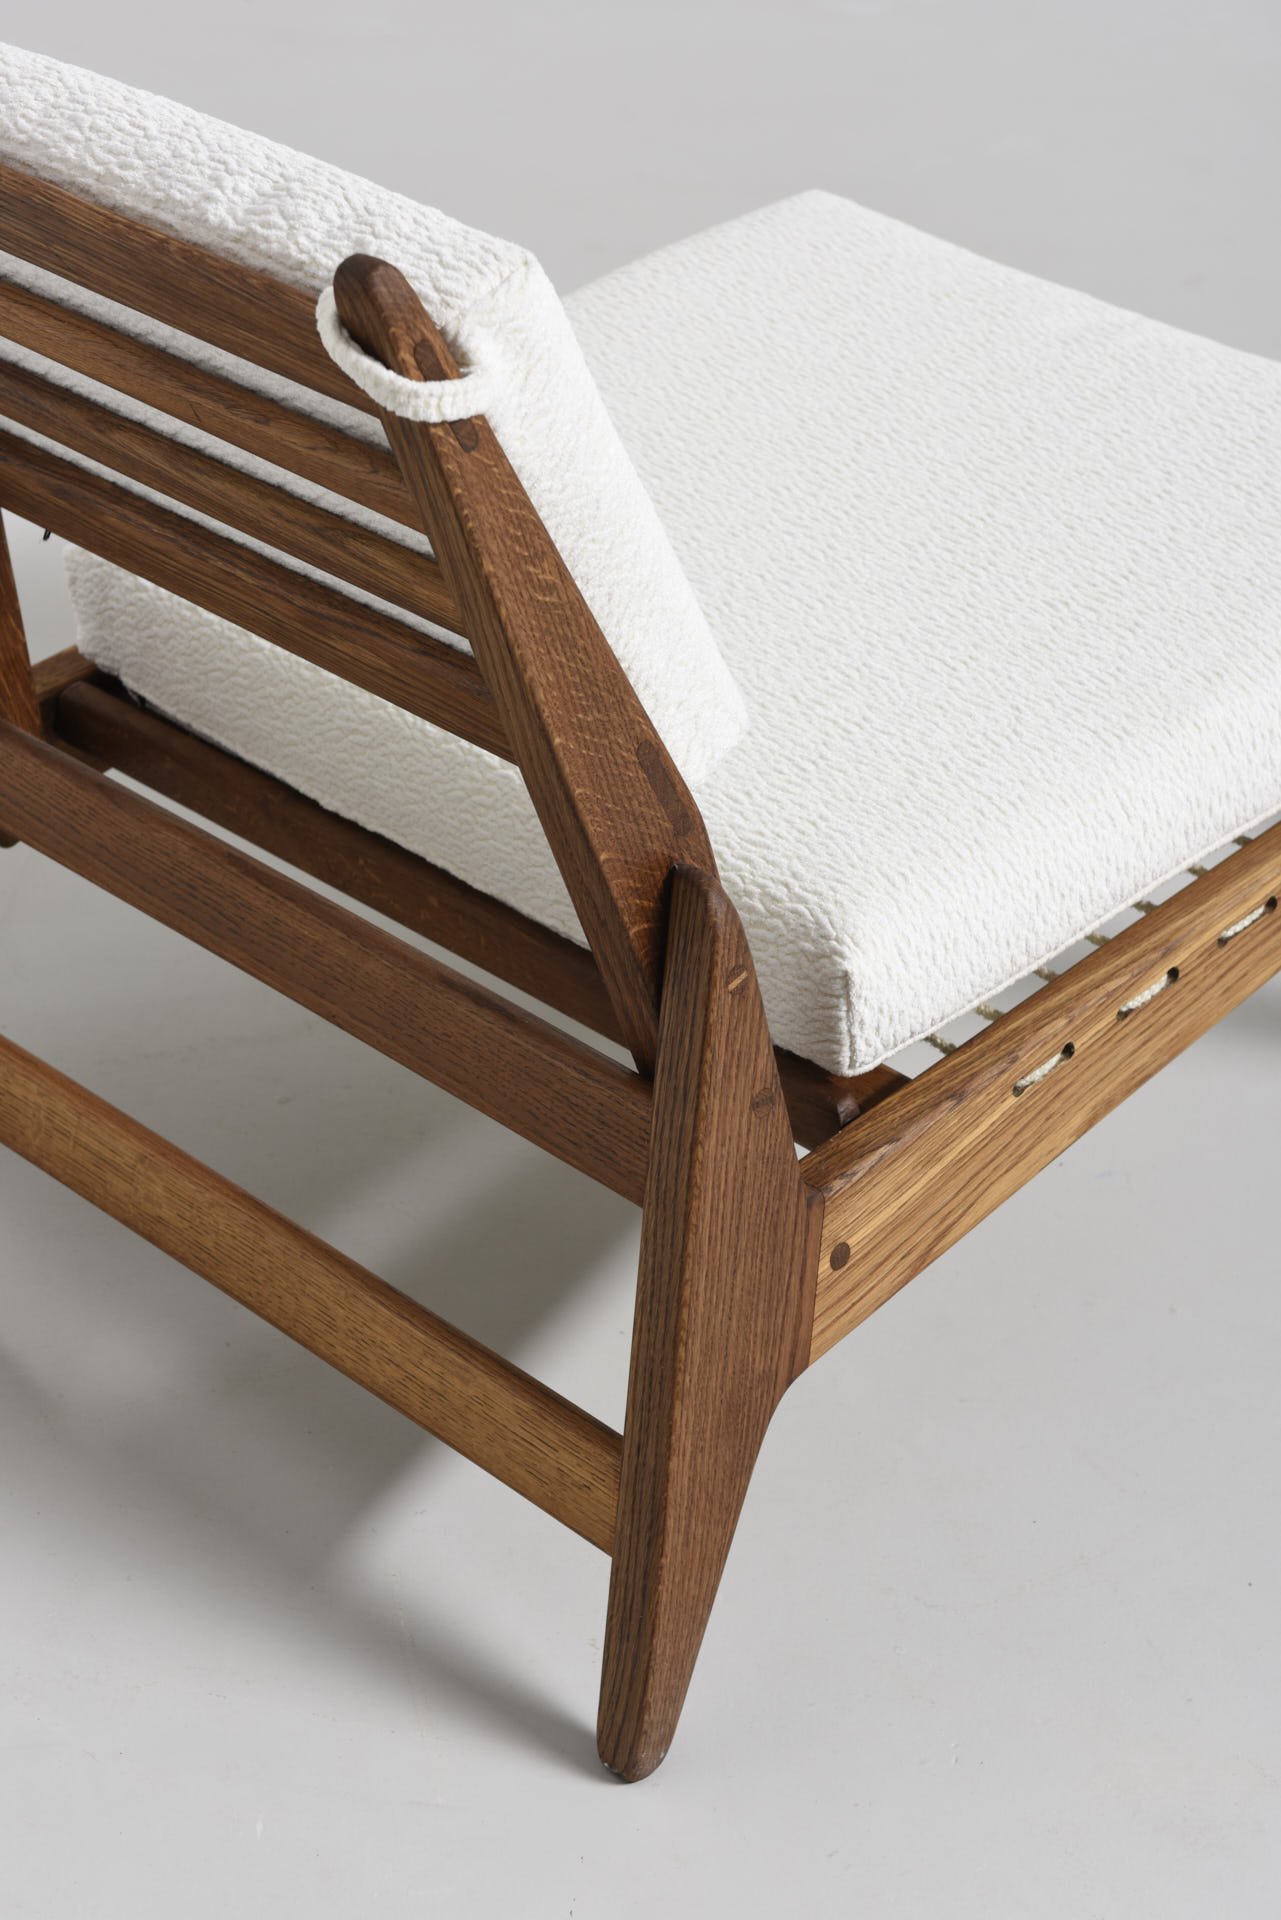 modest furniture vintage 1781-german-hunting-chair-with-ottoman 01